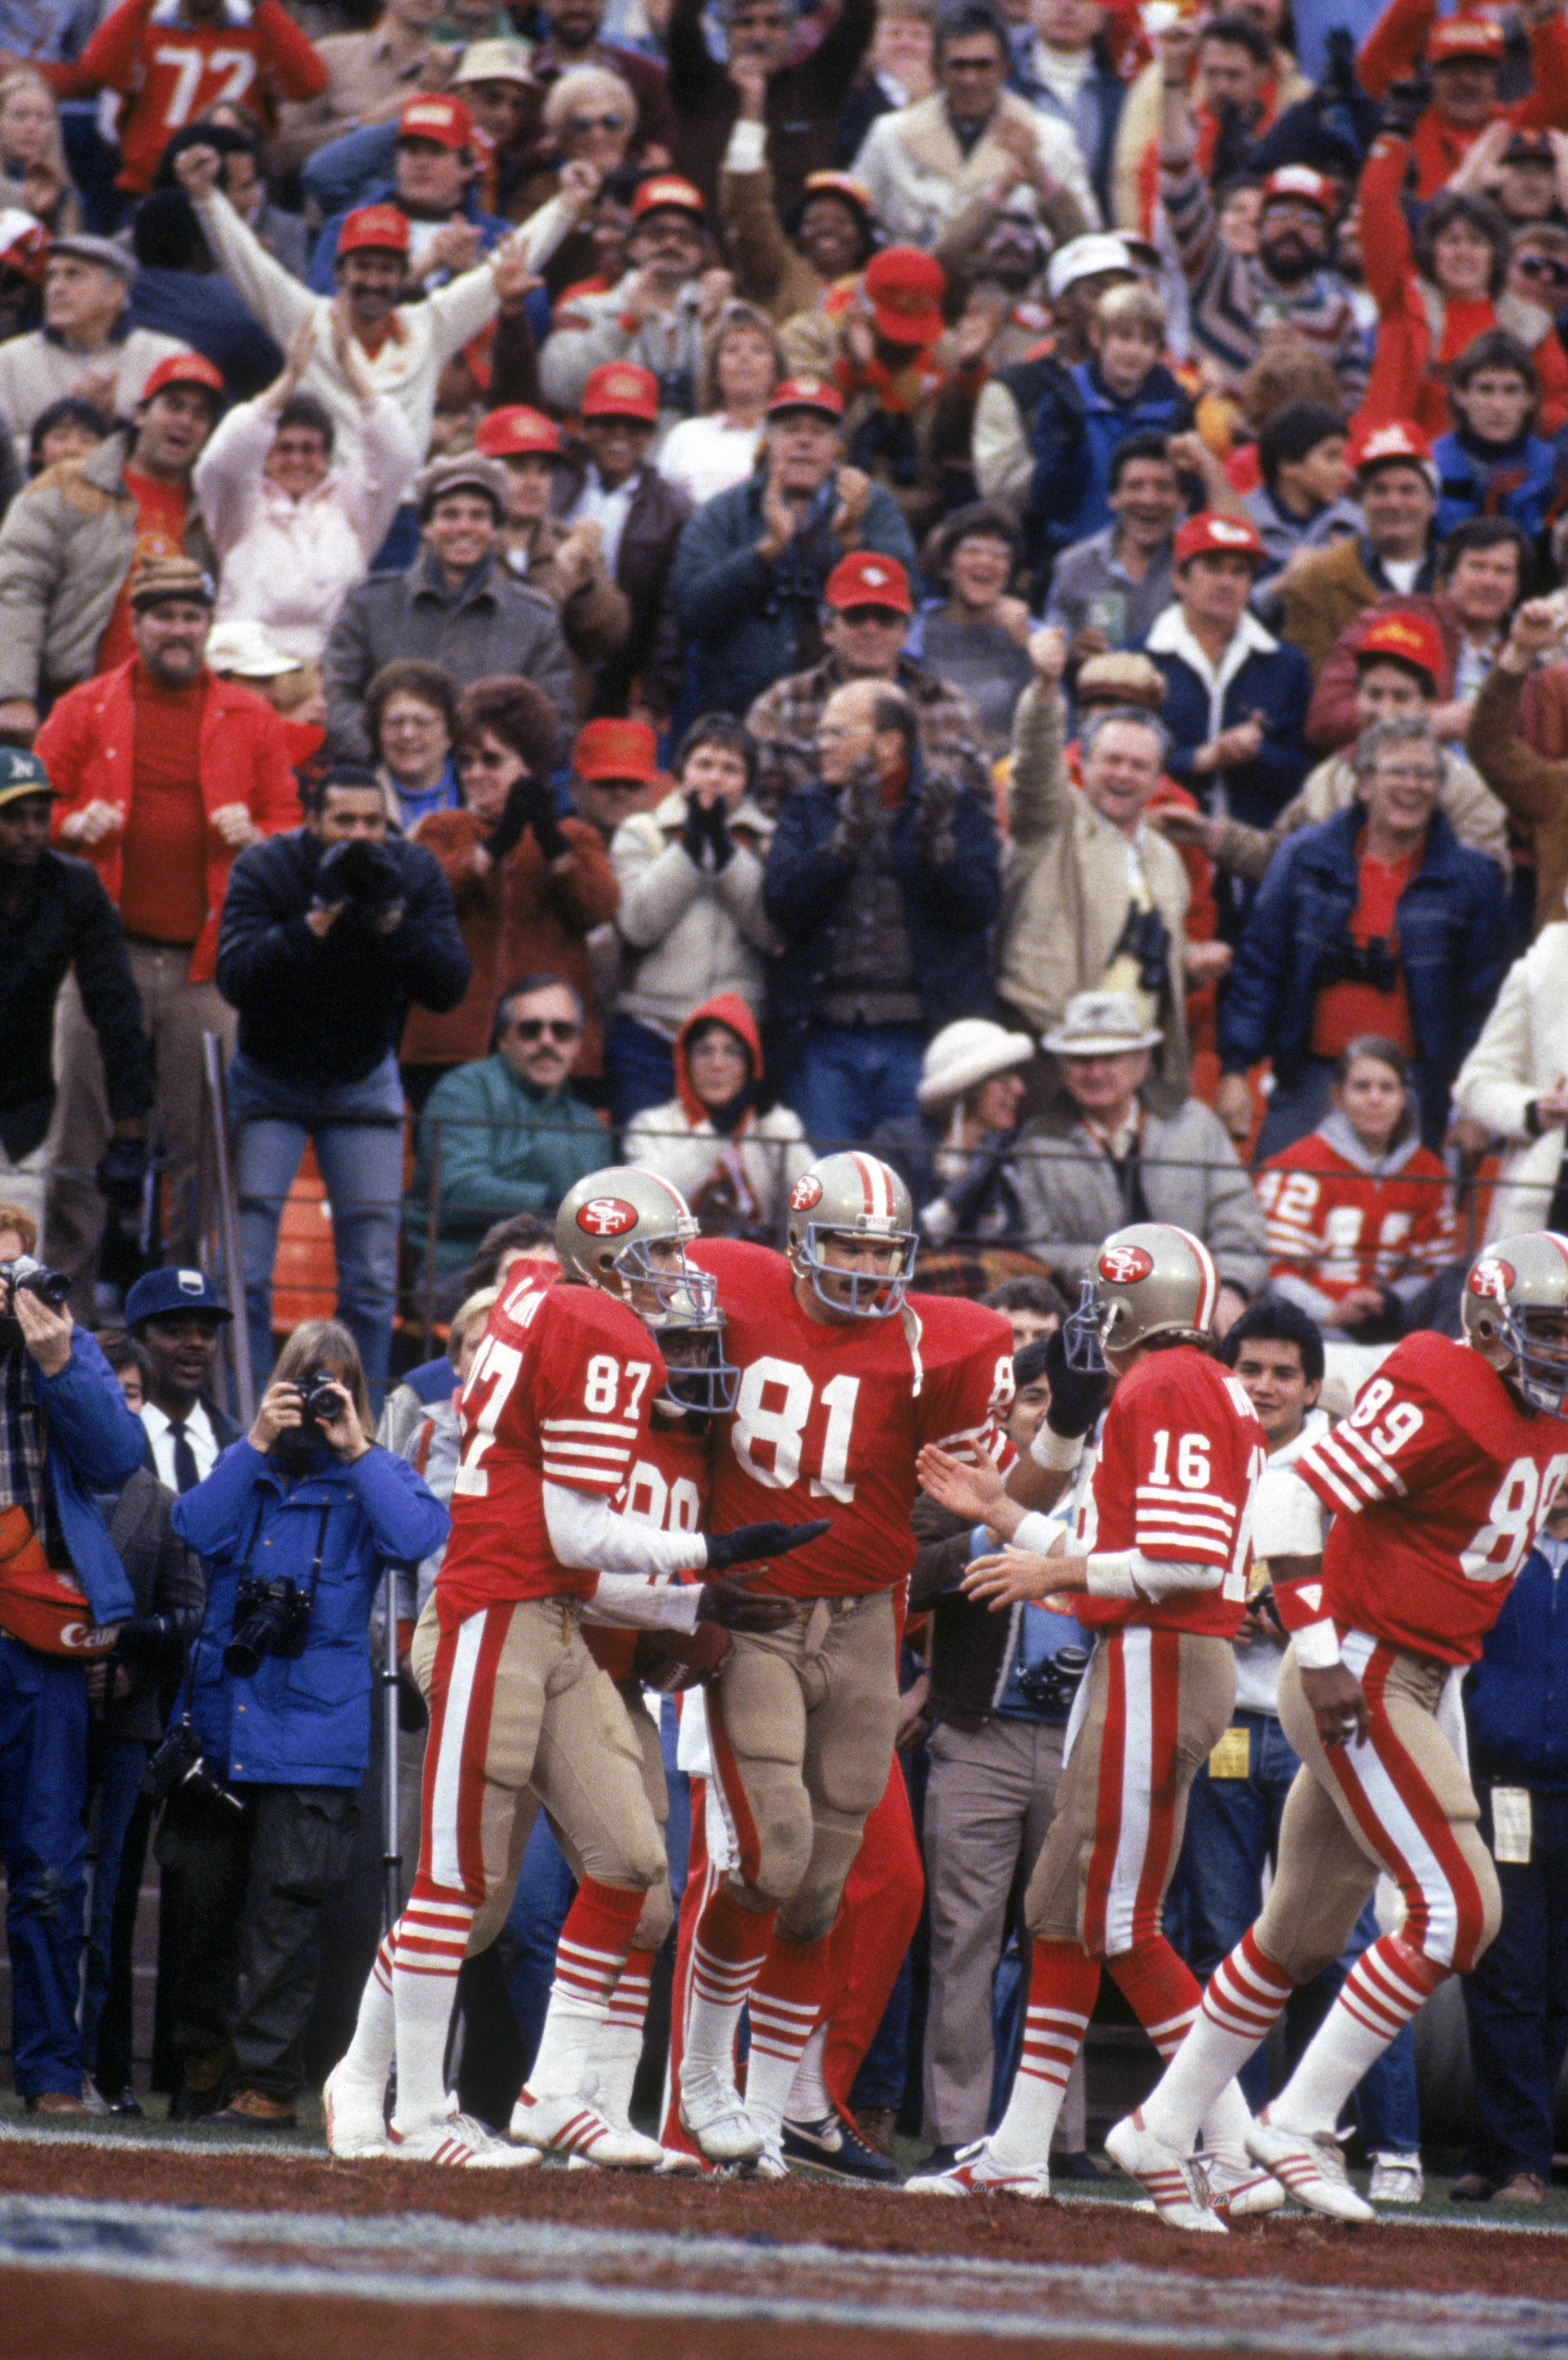 SAN FRANCISCO - JANUARY 6:  Wide receiver Dwight Clark #87, tight end Russ Francis #81 and quarterback Joe Montana #16 of the San Francisco 49ers celebrate during the 1984 NFC Championship Game against the Chicago Bears at Candlestick Park on January 6, 1